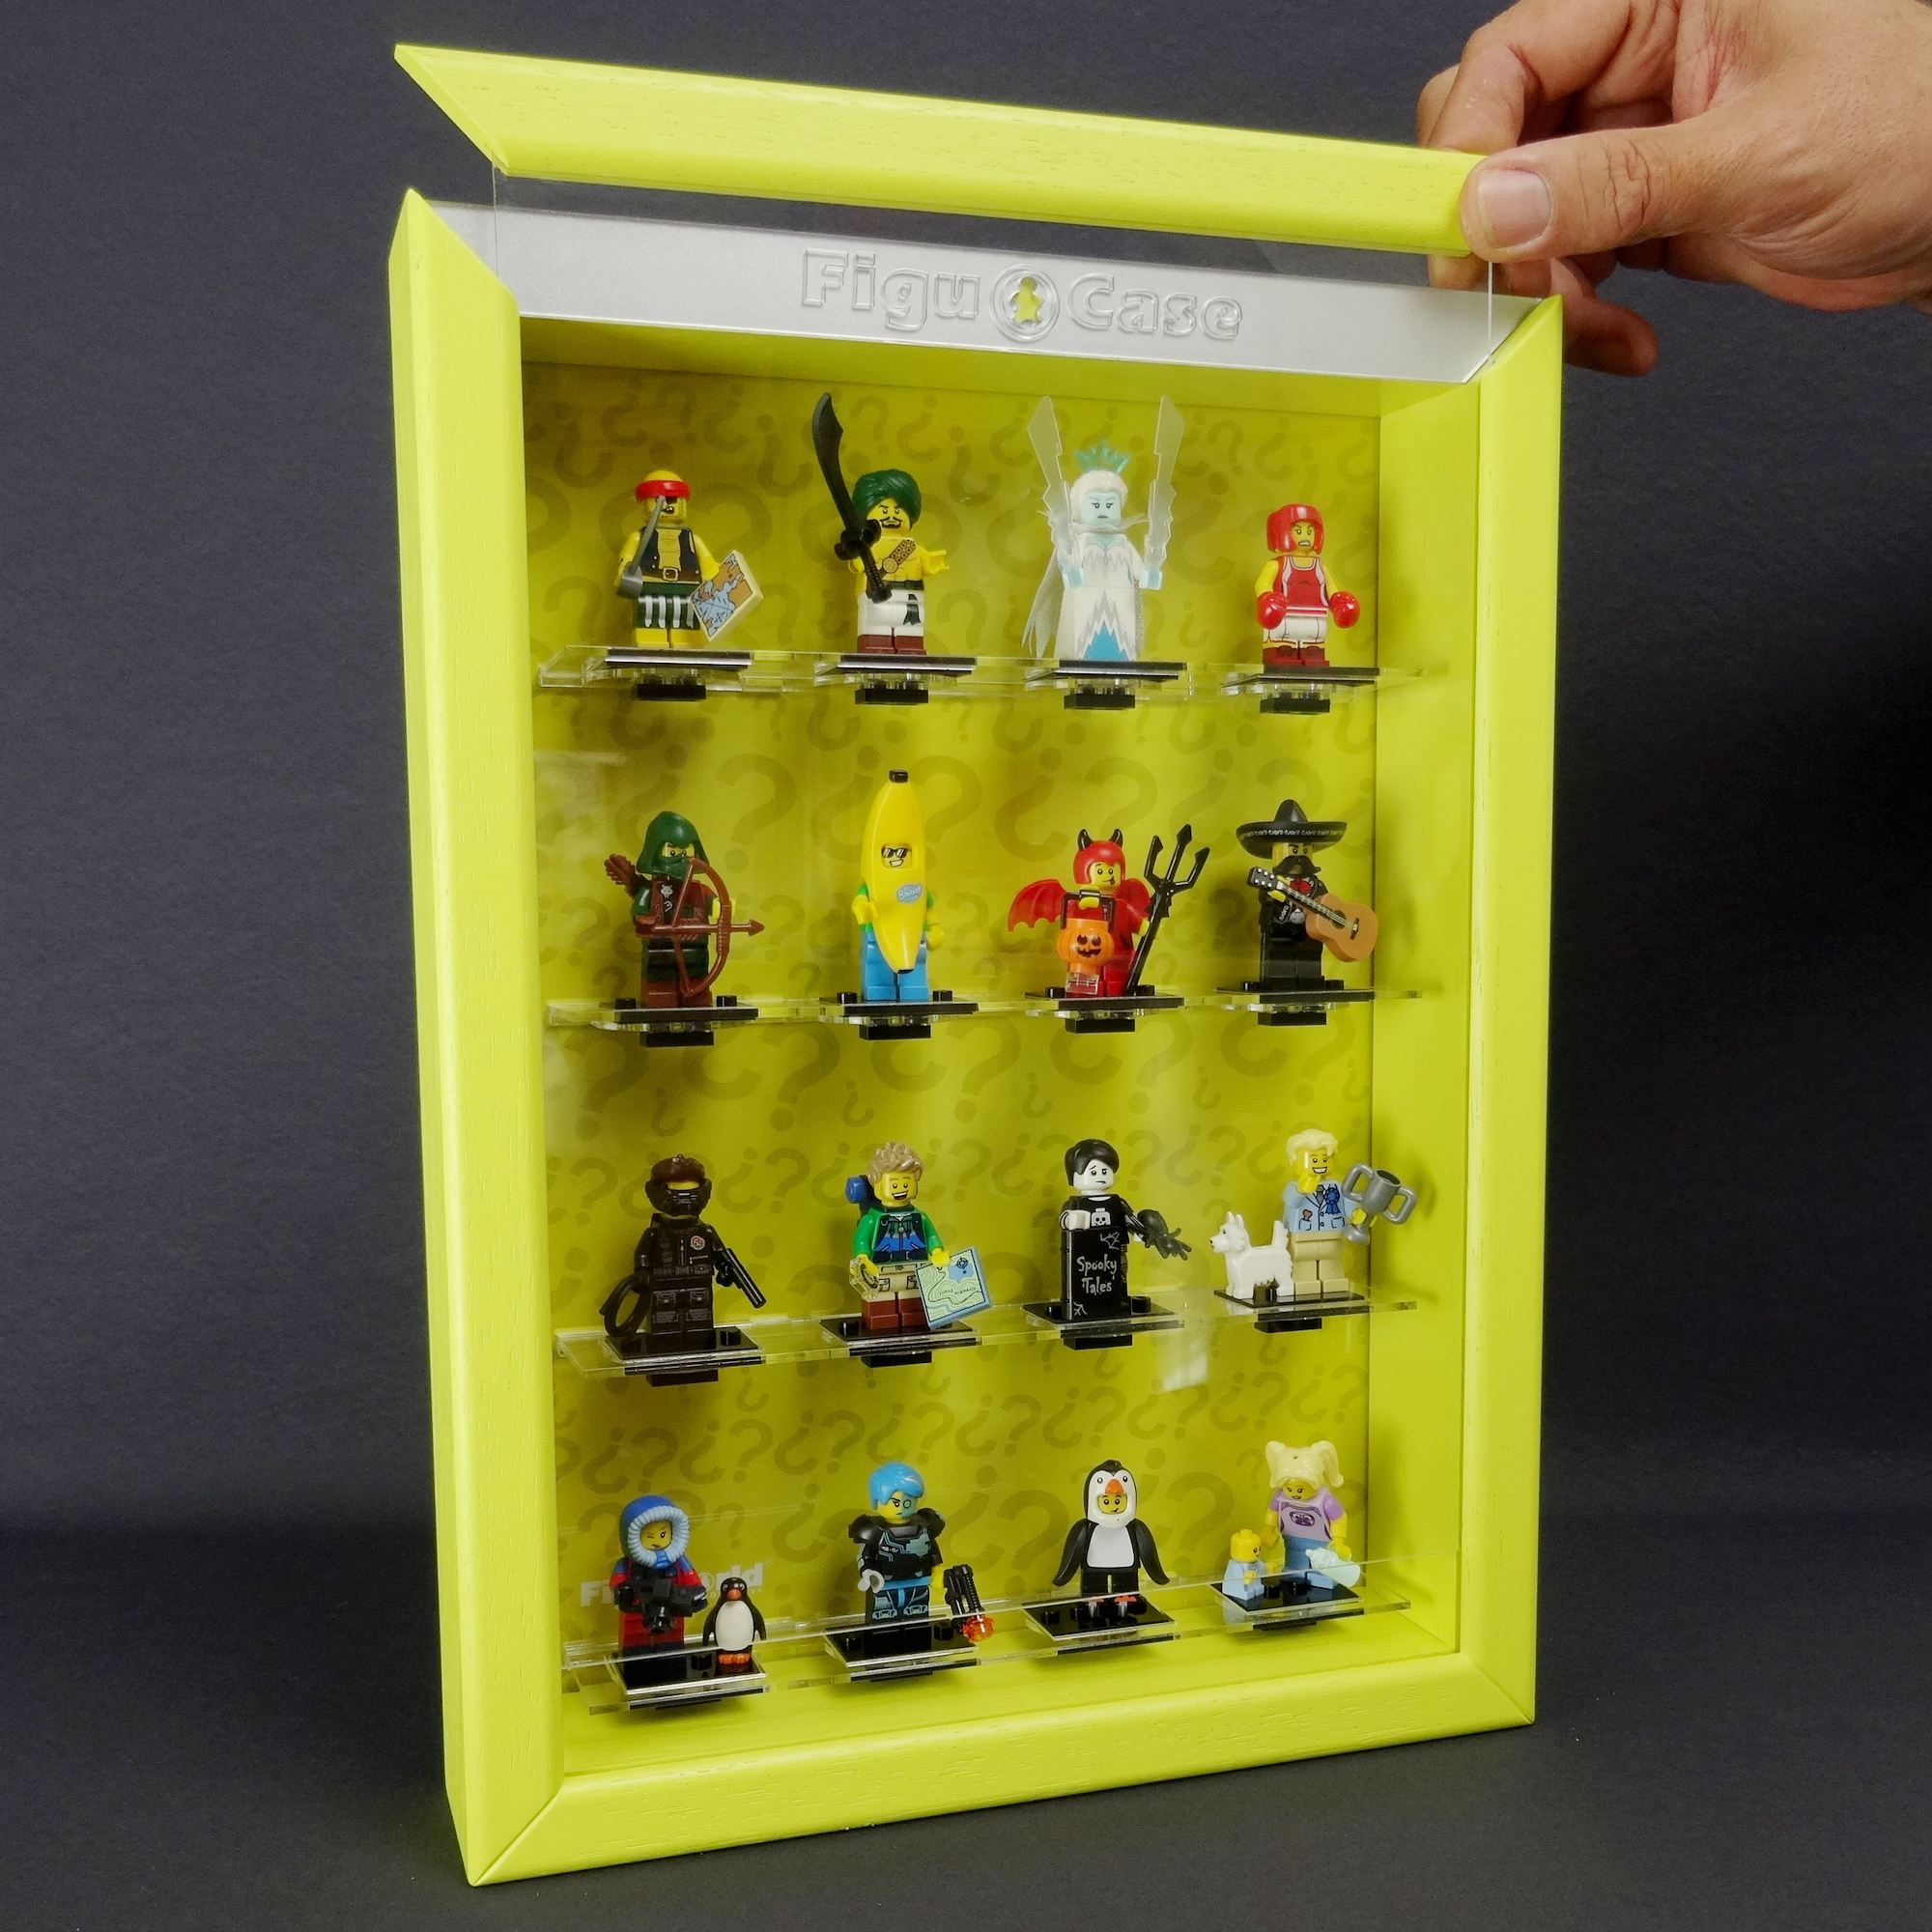 Lego Vitrine Custombricks De Figucase Showcase For Lego Series 71013